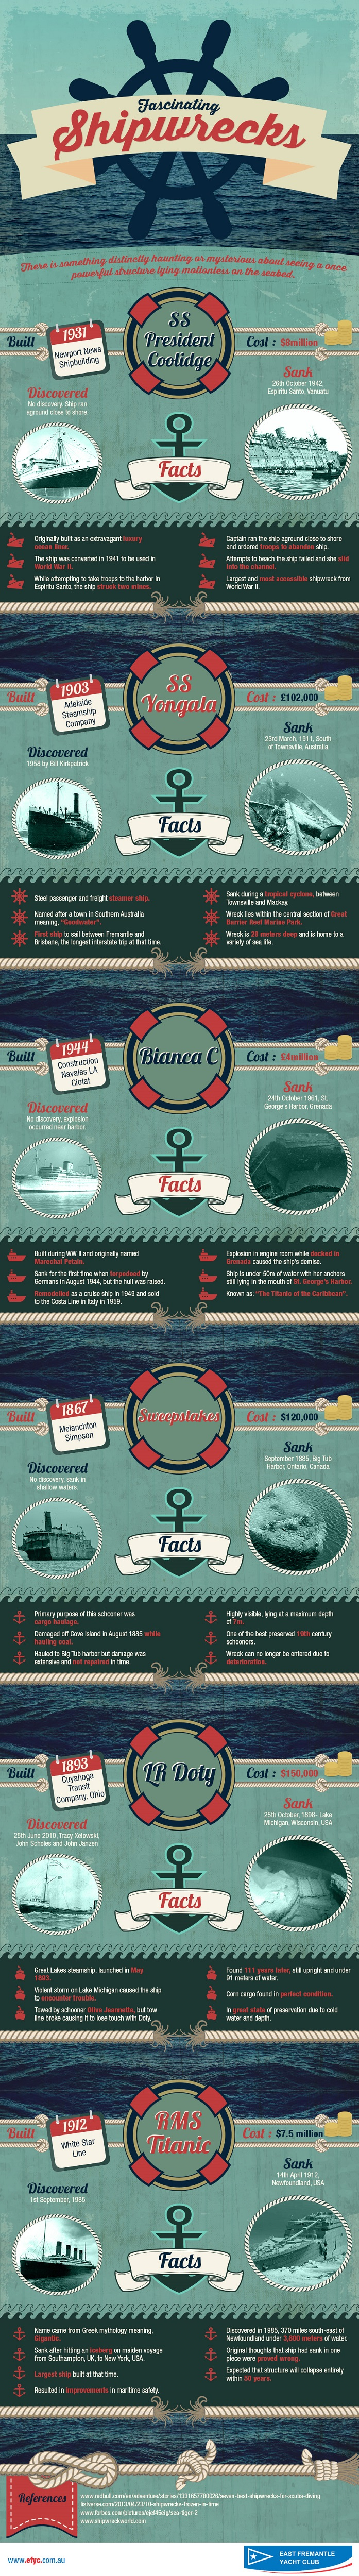 A shipwreck infographic